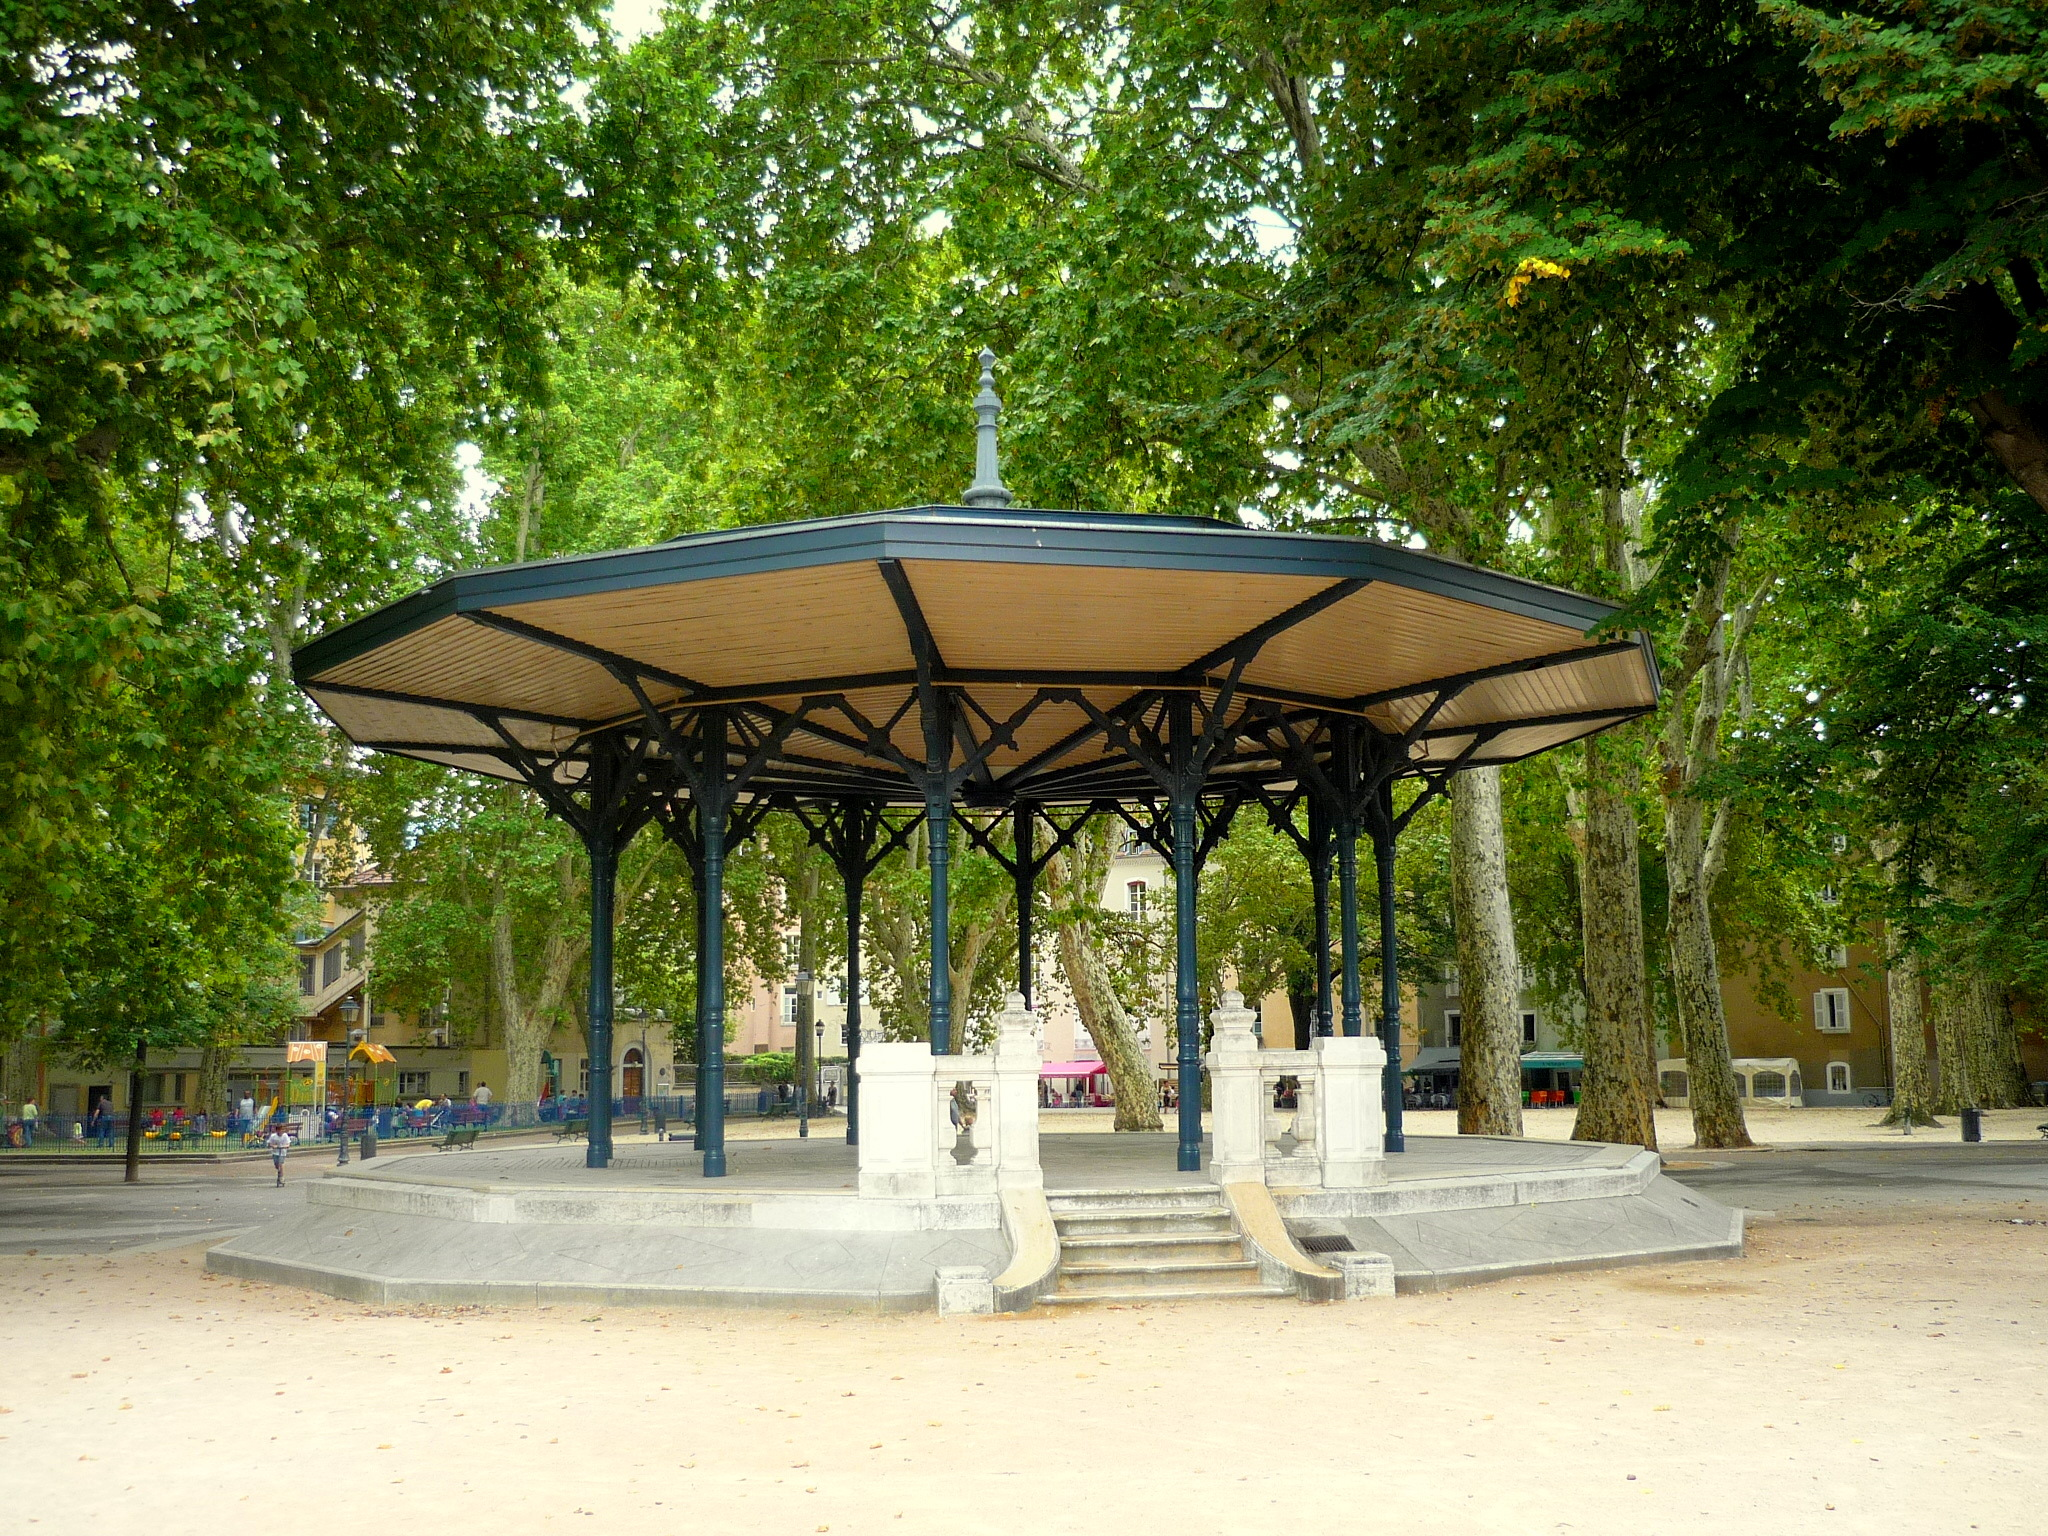 Les jolis kiosques musique de france french moments blog for Piscine jardin du luxembourg